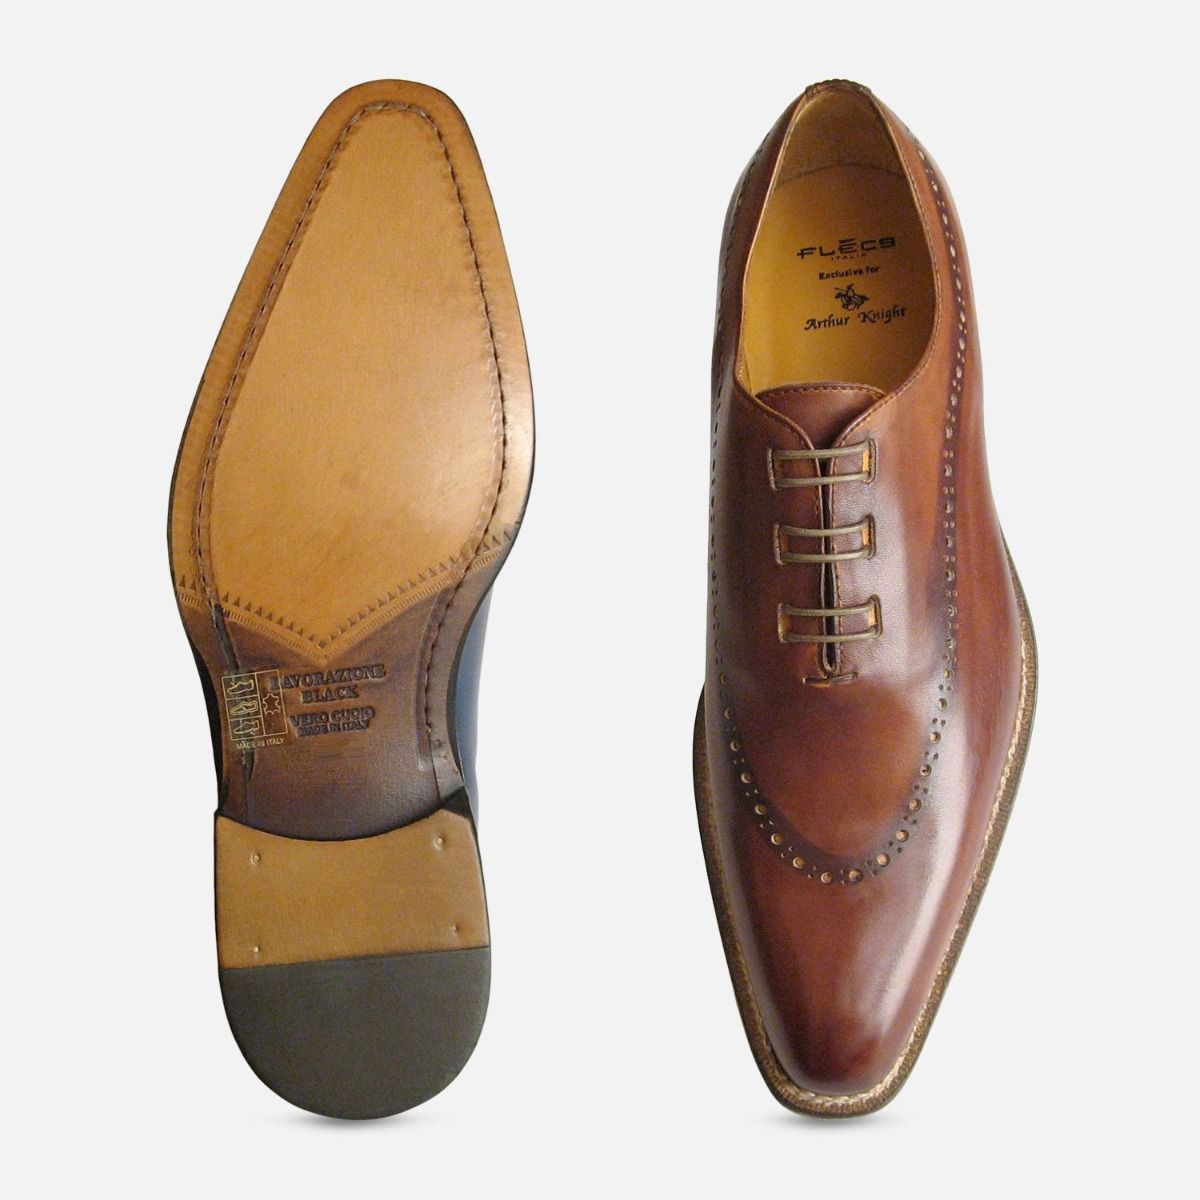 Hand Made Whole Cut Designer Brown Mens Shoes by Arthur Knight